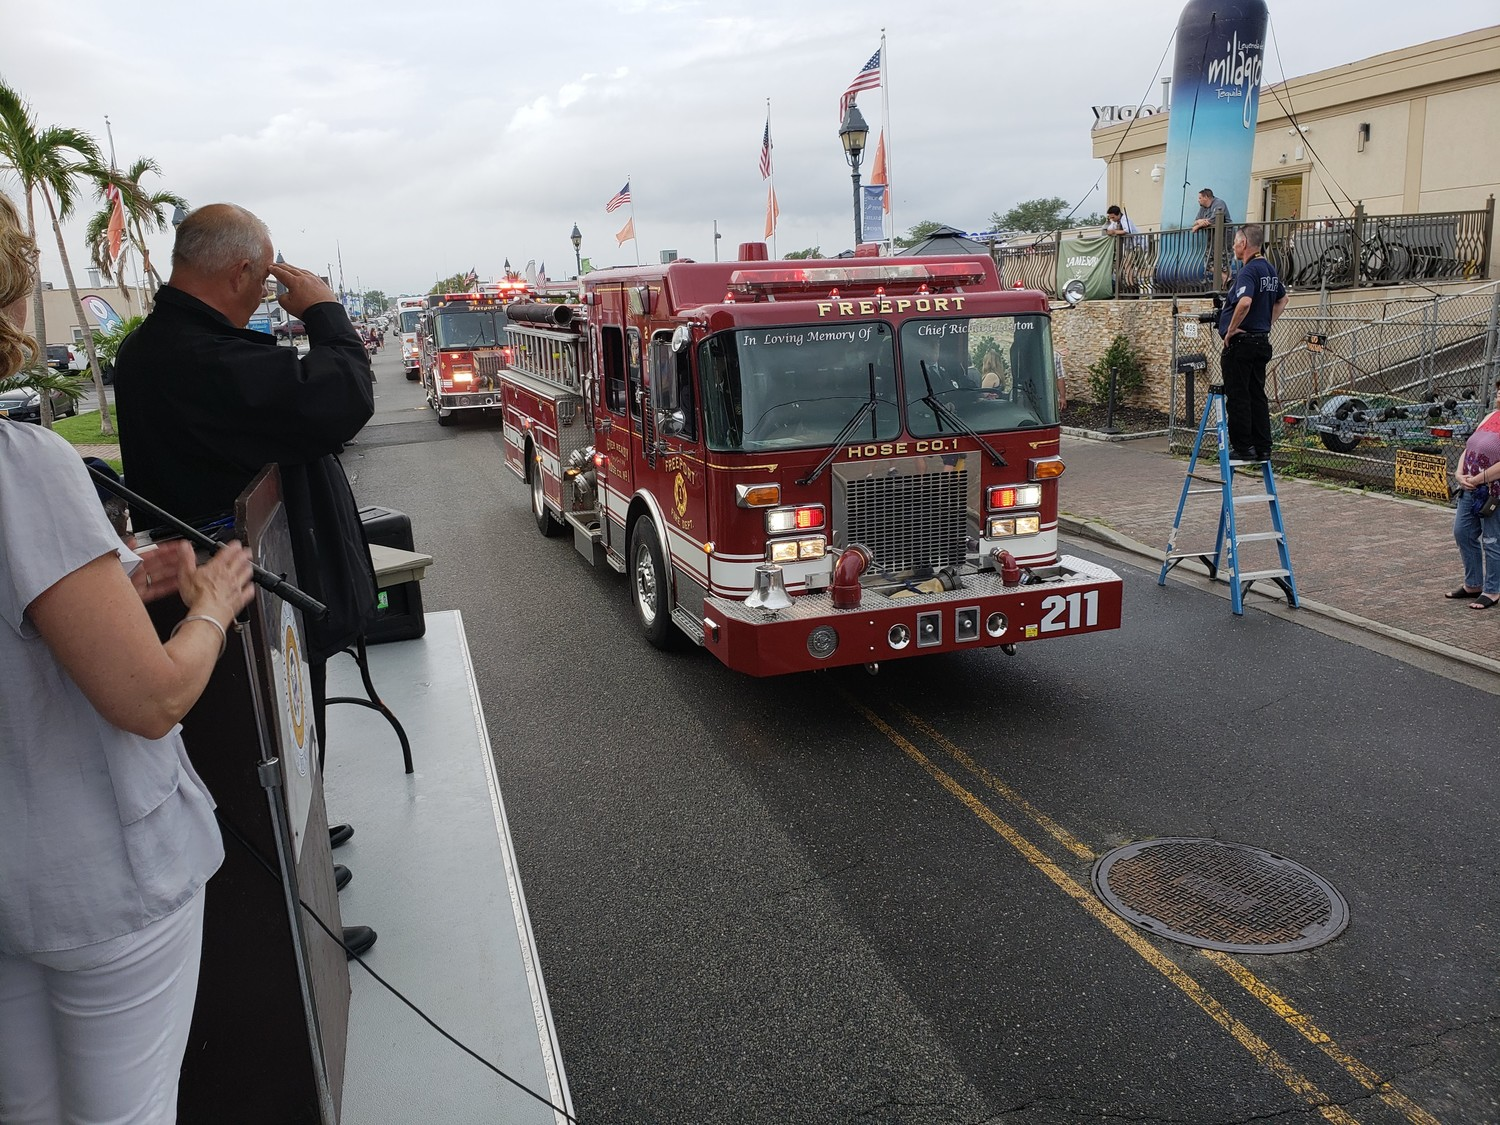 Freeport Hose company 1 showed off its truck.